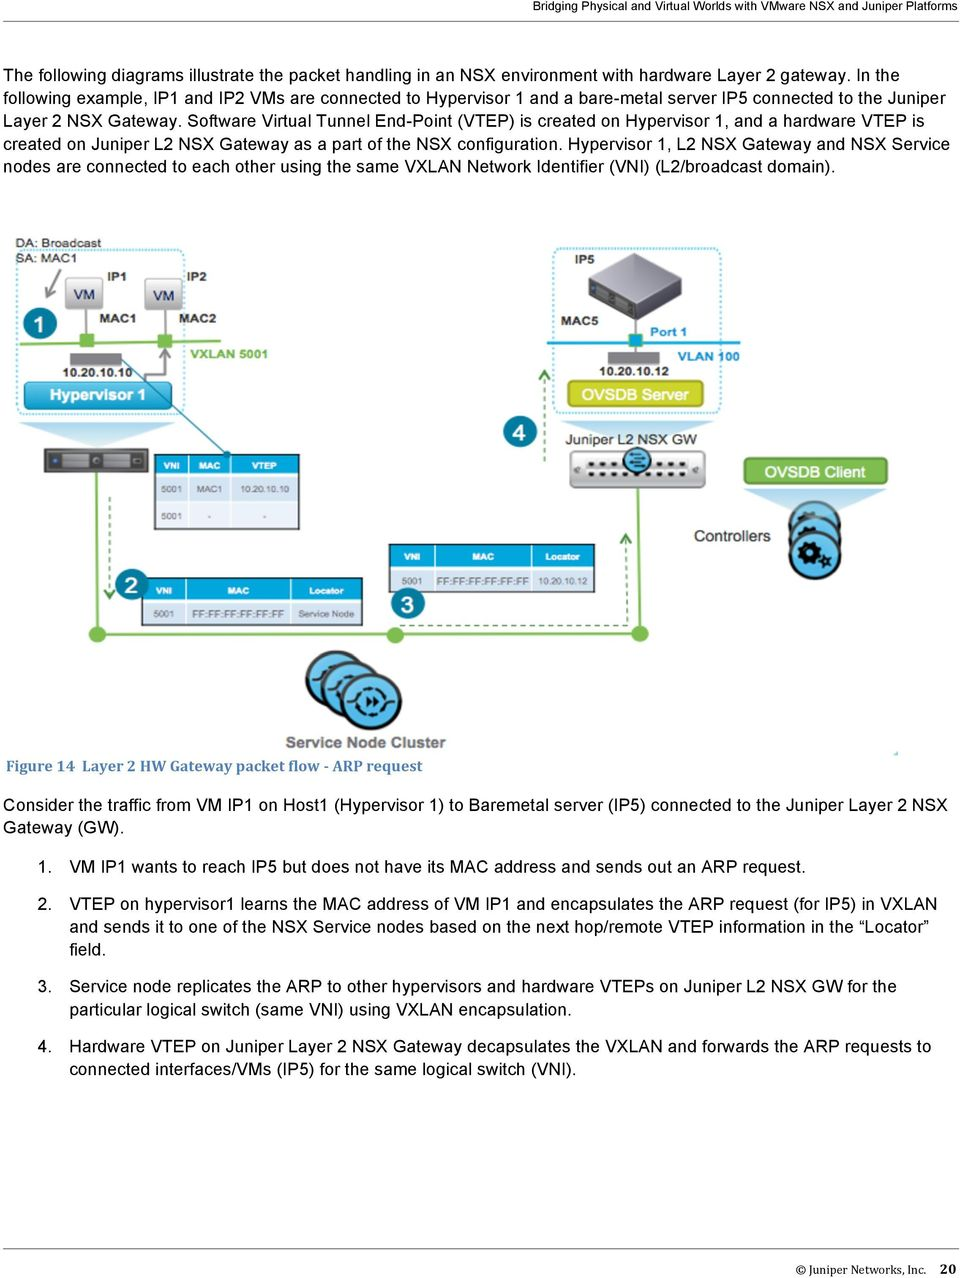 Software Virtual Tunnel End-Point (VTEP) is created on Hypervisor 1, and a hardware VTEP is created on Juniper L2 NSX Gateway as a part of the NSX configuration.